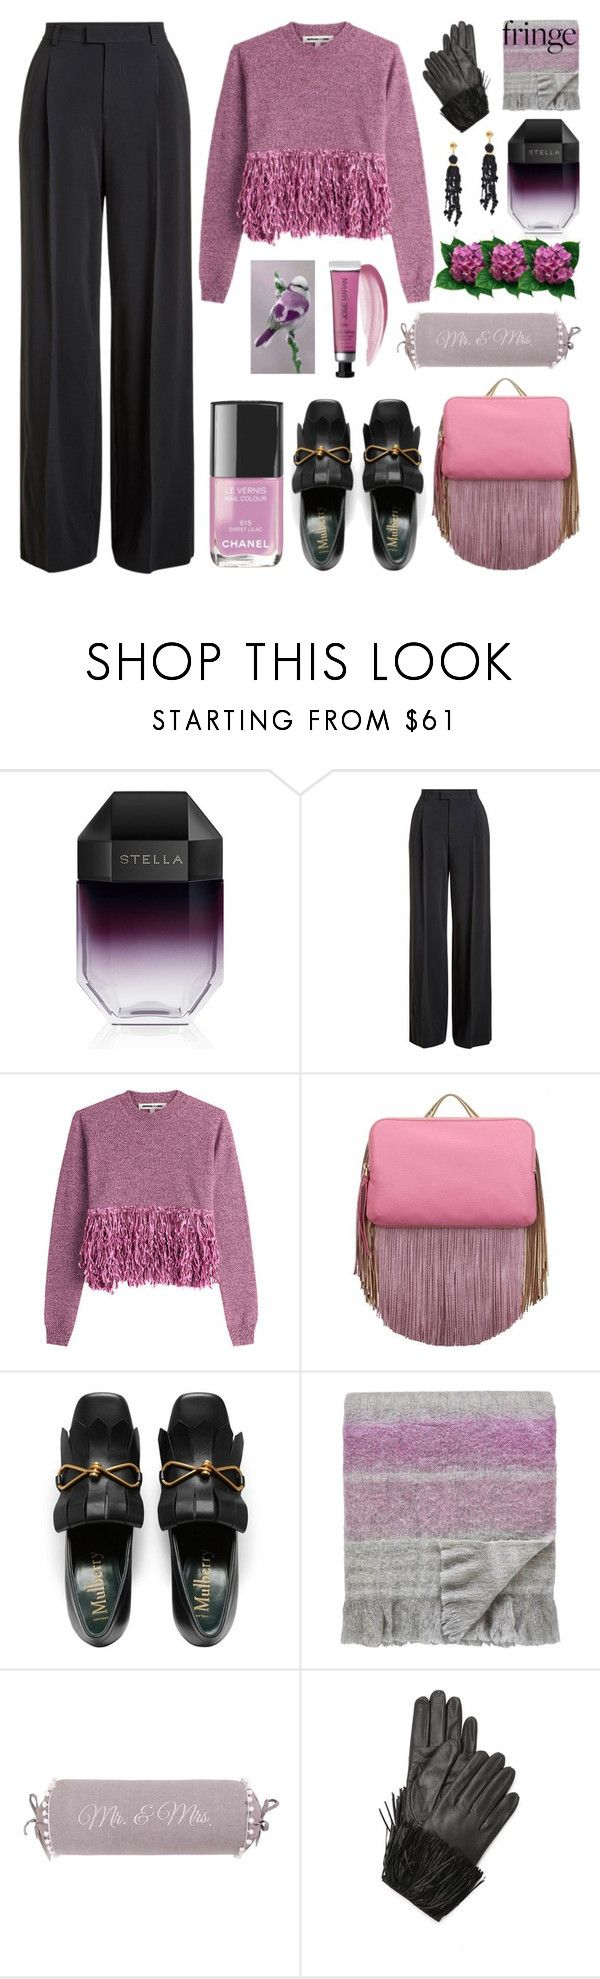 """""""Shimmy Shimmy: Fringe"""" by grozdana-v ❤ liked on Polyvore featuring STELLA McCARTNEY, RED Valentino, McQ by Alexander McQueen, The Volon, SANDERSON, Diane Von Furstenberg, Lizzie Fortunato and fringe"""